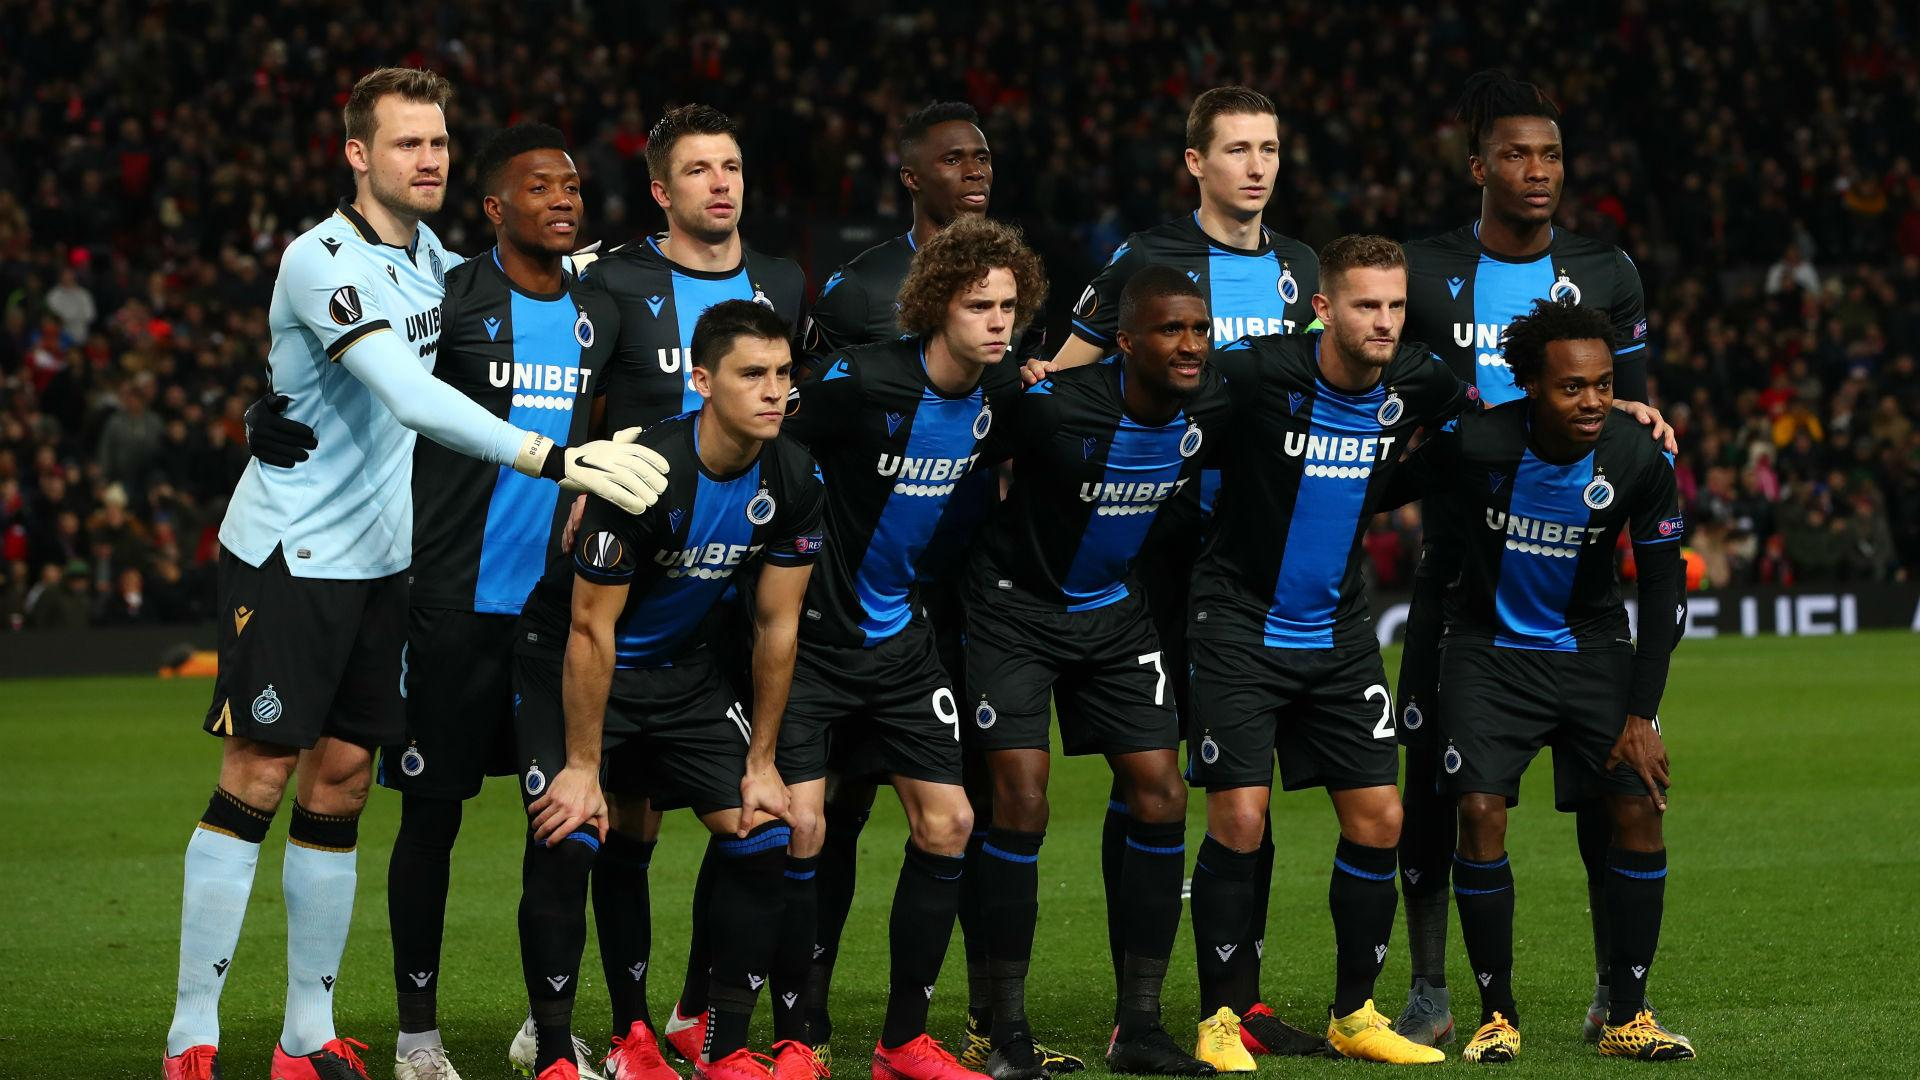 Coronavirus Club Brugge To Be Champions As Belgium s Pro League Recommends Cancellation